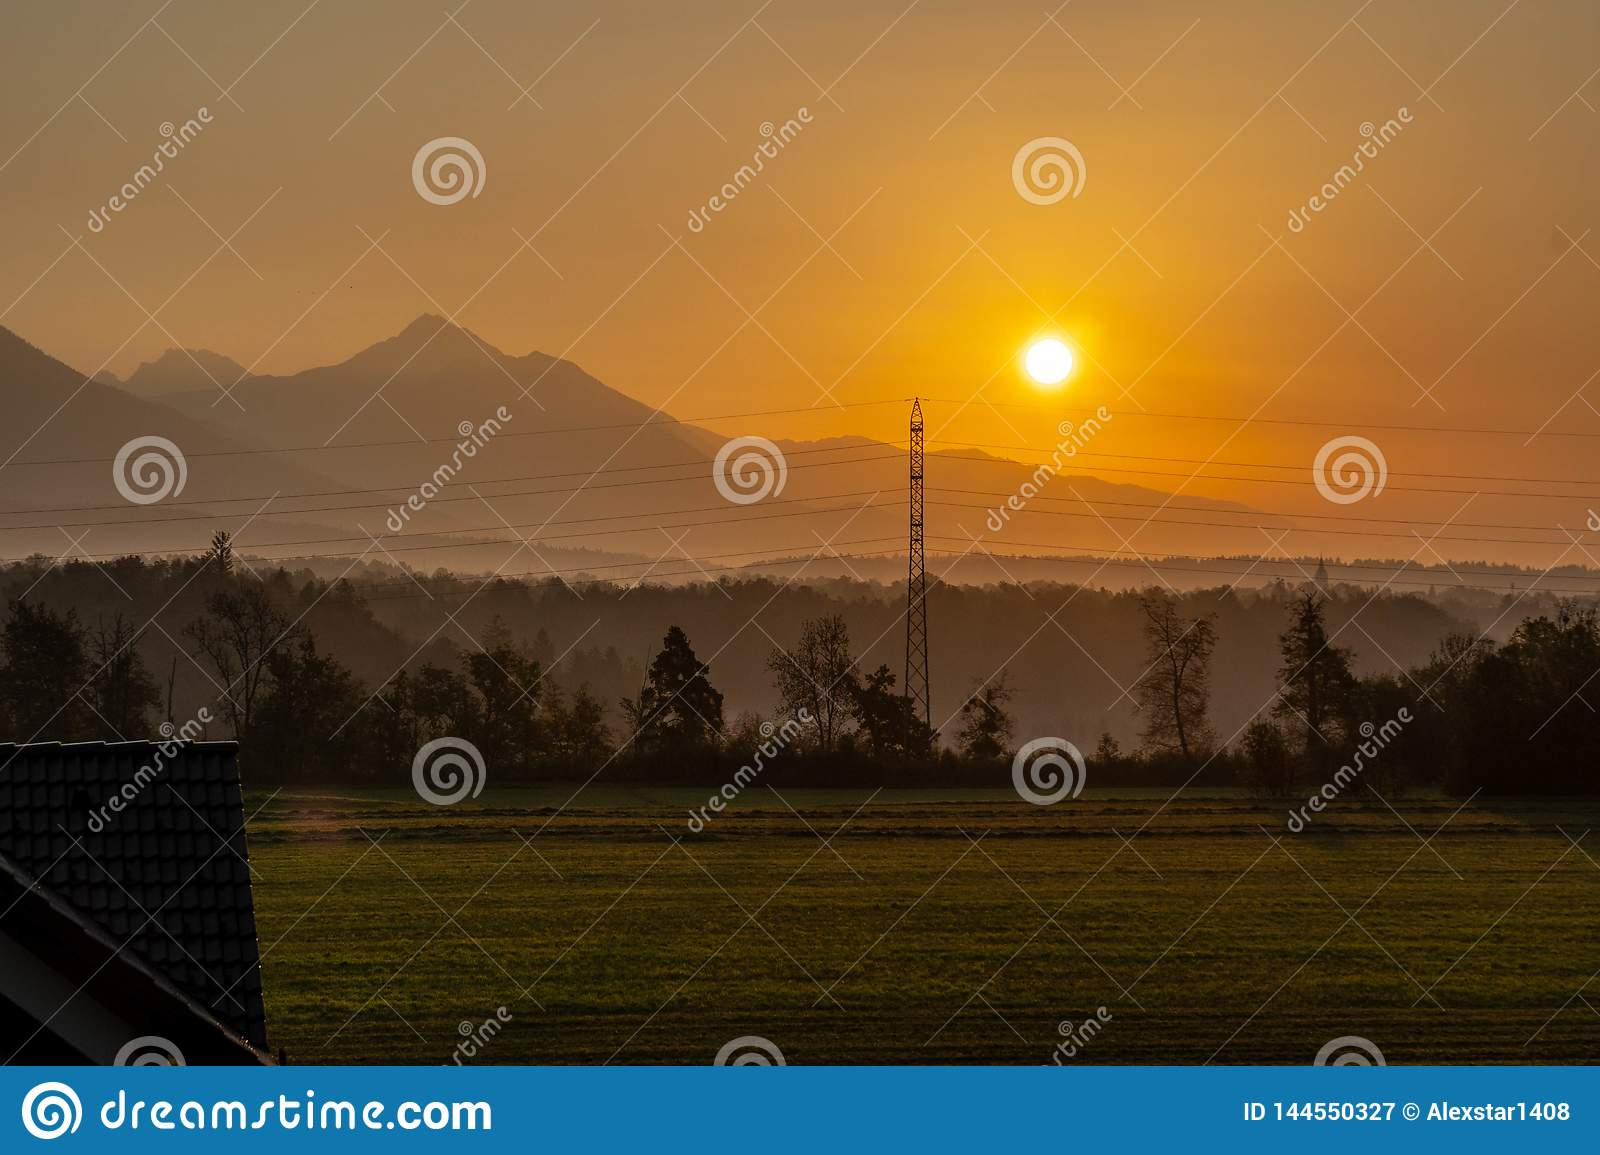 Sunrise over the forest and mountains